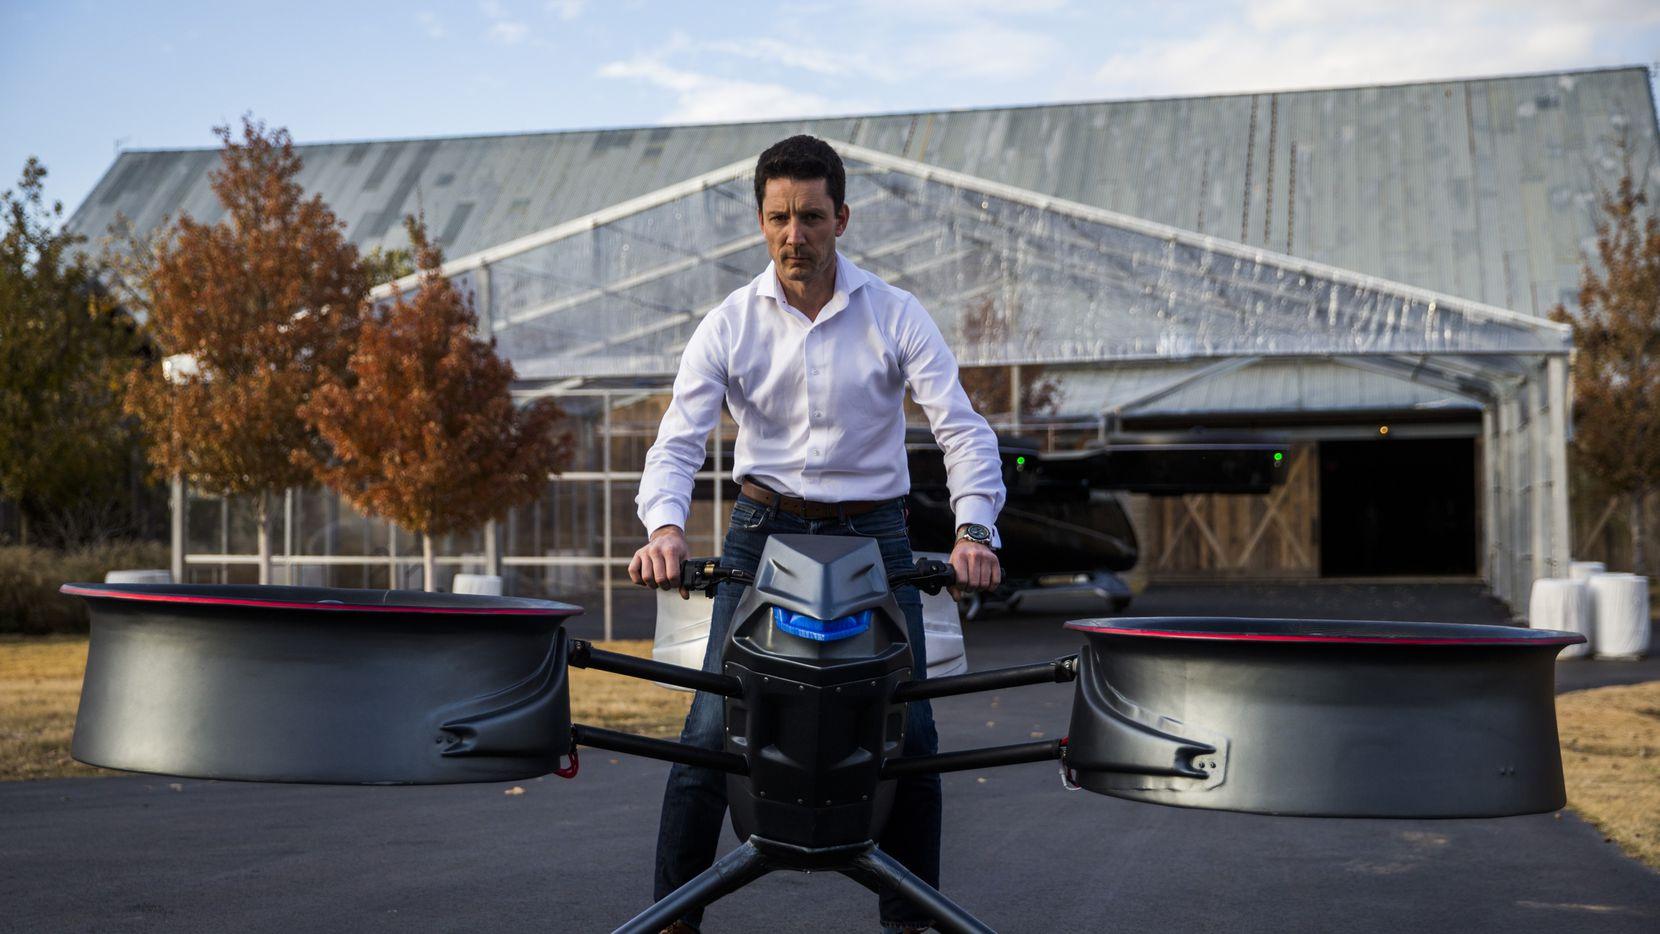 Assen Andonov, CEO and Founder of Assen Aeronautics, demonstrates a prototype of the Assen A2 Avenger sky bike during an invitation-only summit for aviation investors and business executives on Wednesday, November 20, 2019 at Circle T Ranch in Westlake, Texas. (Ashley Landis/The Dallas Morning News)